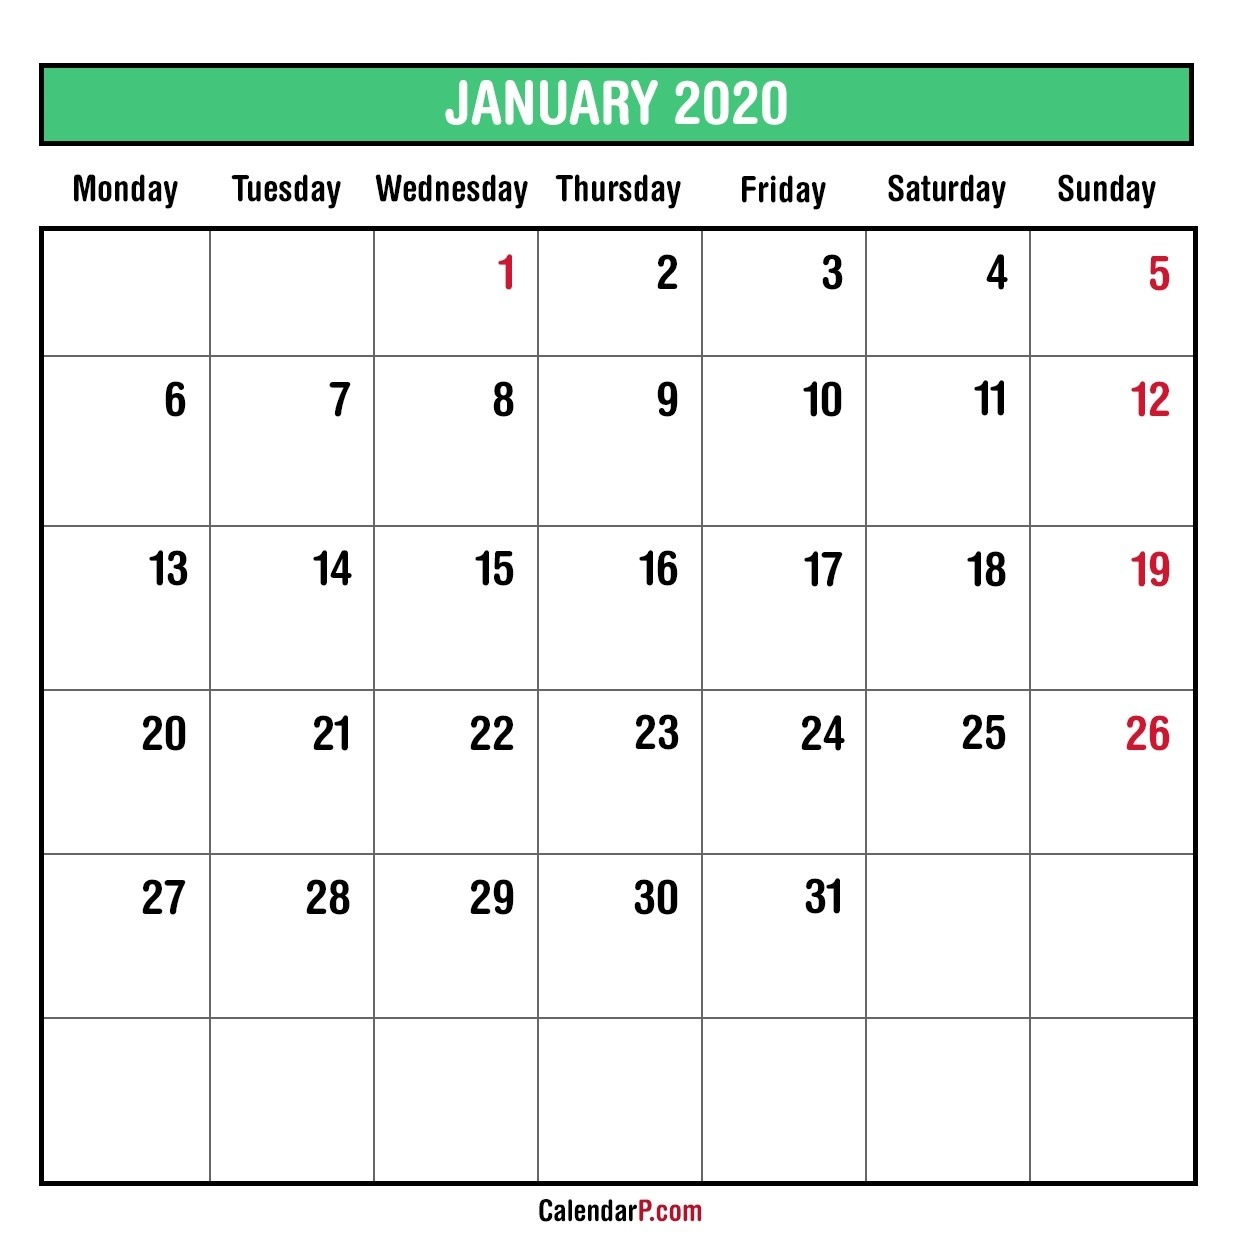 2020 Monthly Planner Printable Free – Monday Start, Green-Printable Calendar 2020 Monthly Monday Start